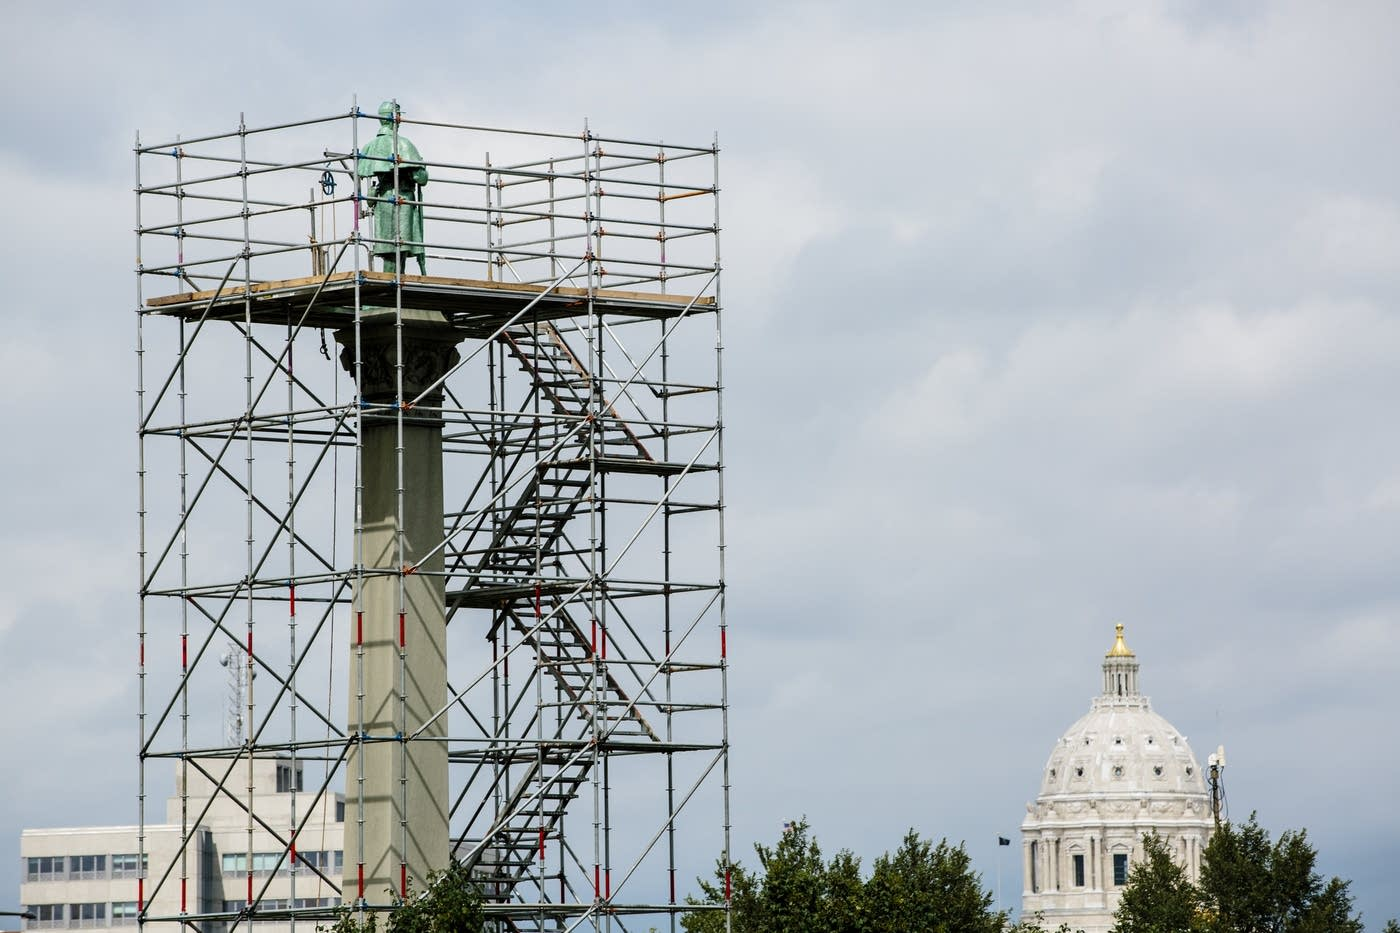 Scaffolding surrounding the Soldiers and Sailors Memorial during refurbishing in 2017 (MPR News)